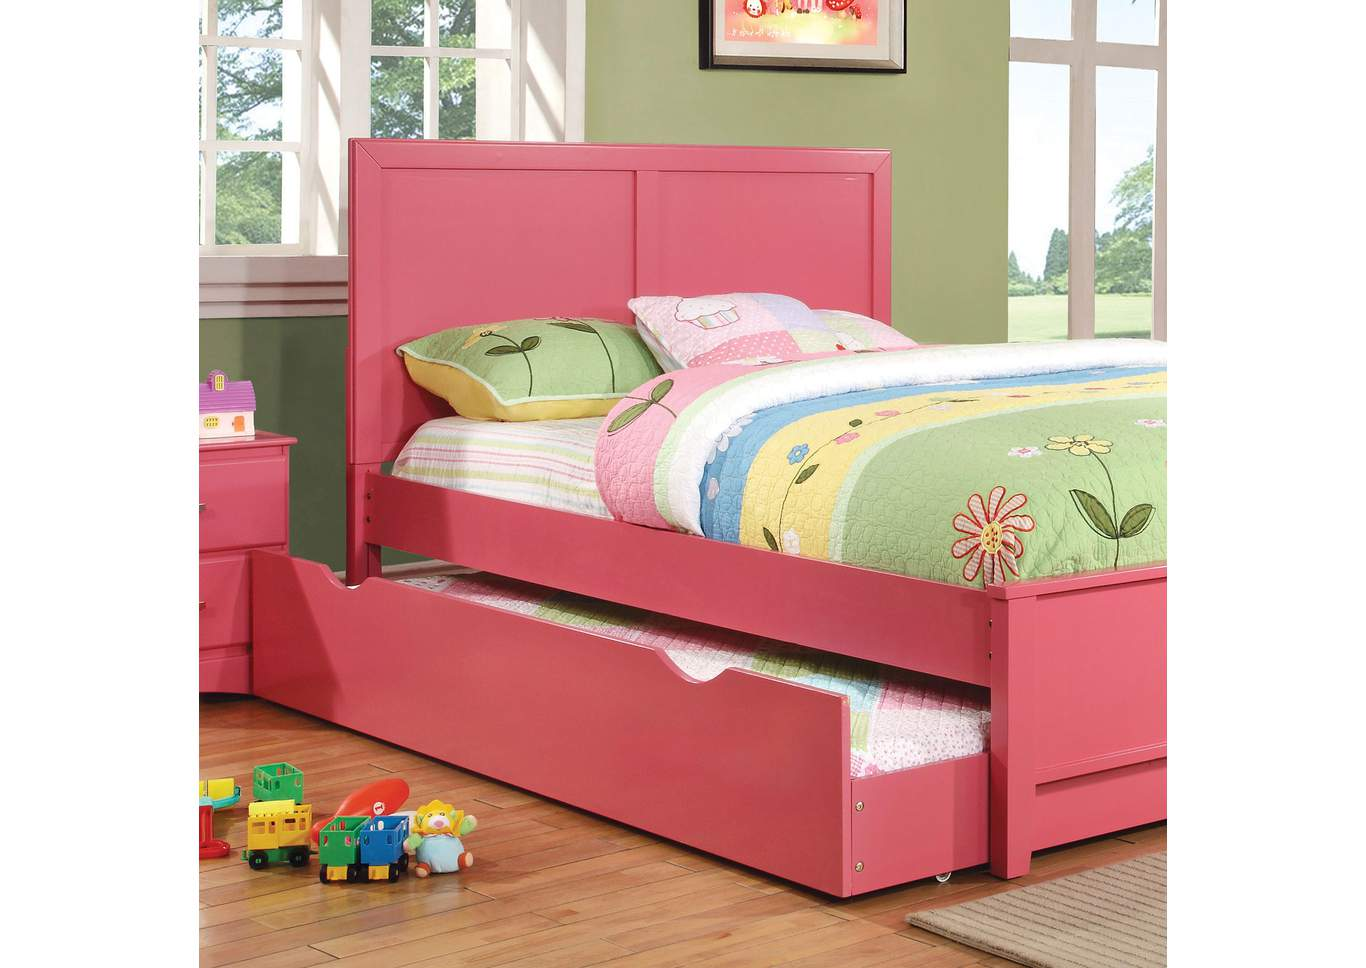 5th Avenue Furniture - MI Prismo Pink Full Platform Trundle Bed